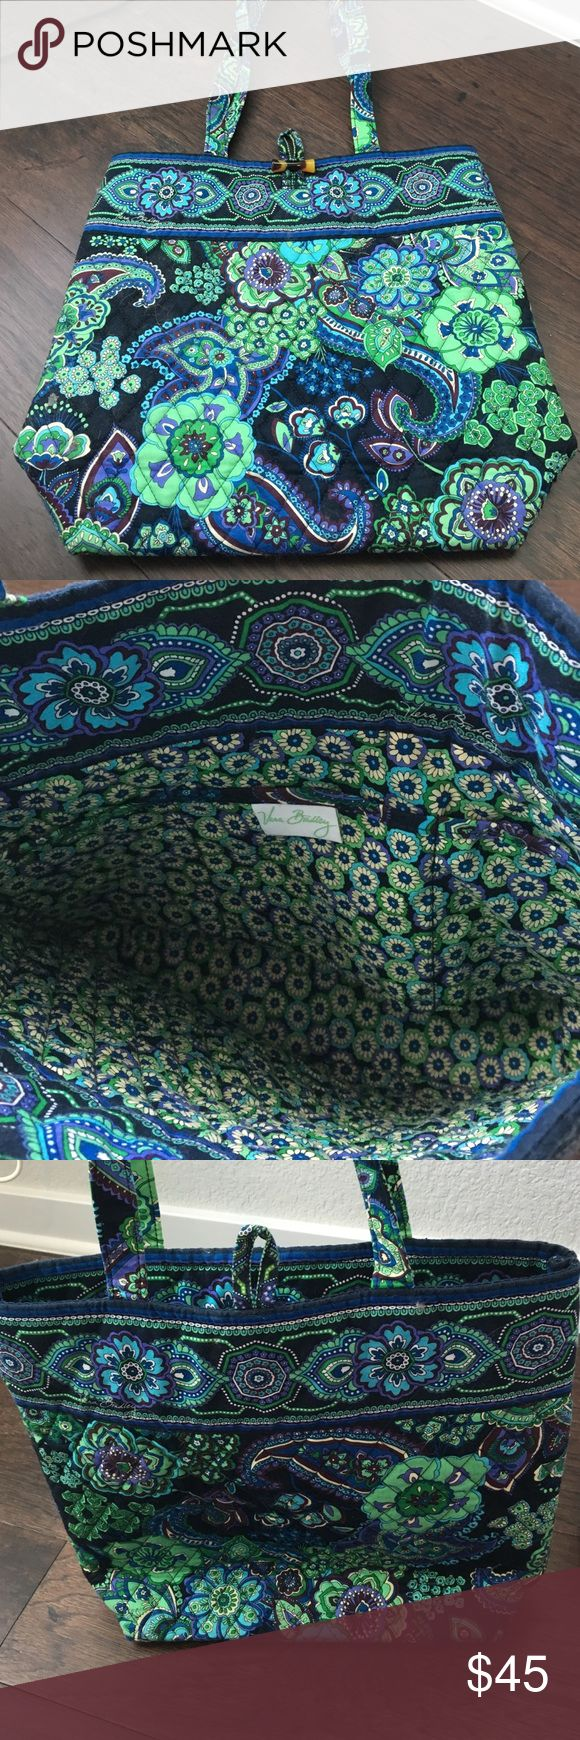 Vera Bradley tote in Rhythm and Blues Like new Vera Bradley tote in retired rhythm and blues pattern. Beautiful bright green, blues, and purples in paisley style pattern. Perfect for fitting a small laptop or a few notebooks. Tortoise shell style connector at top. Does not even look worn at all. Willing to find a price that works for you! Vera Bradley Bags Totes